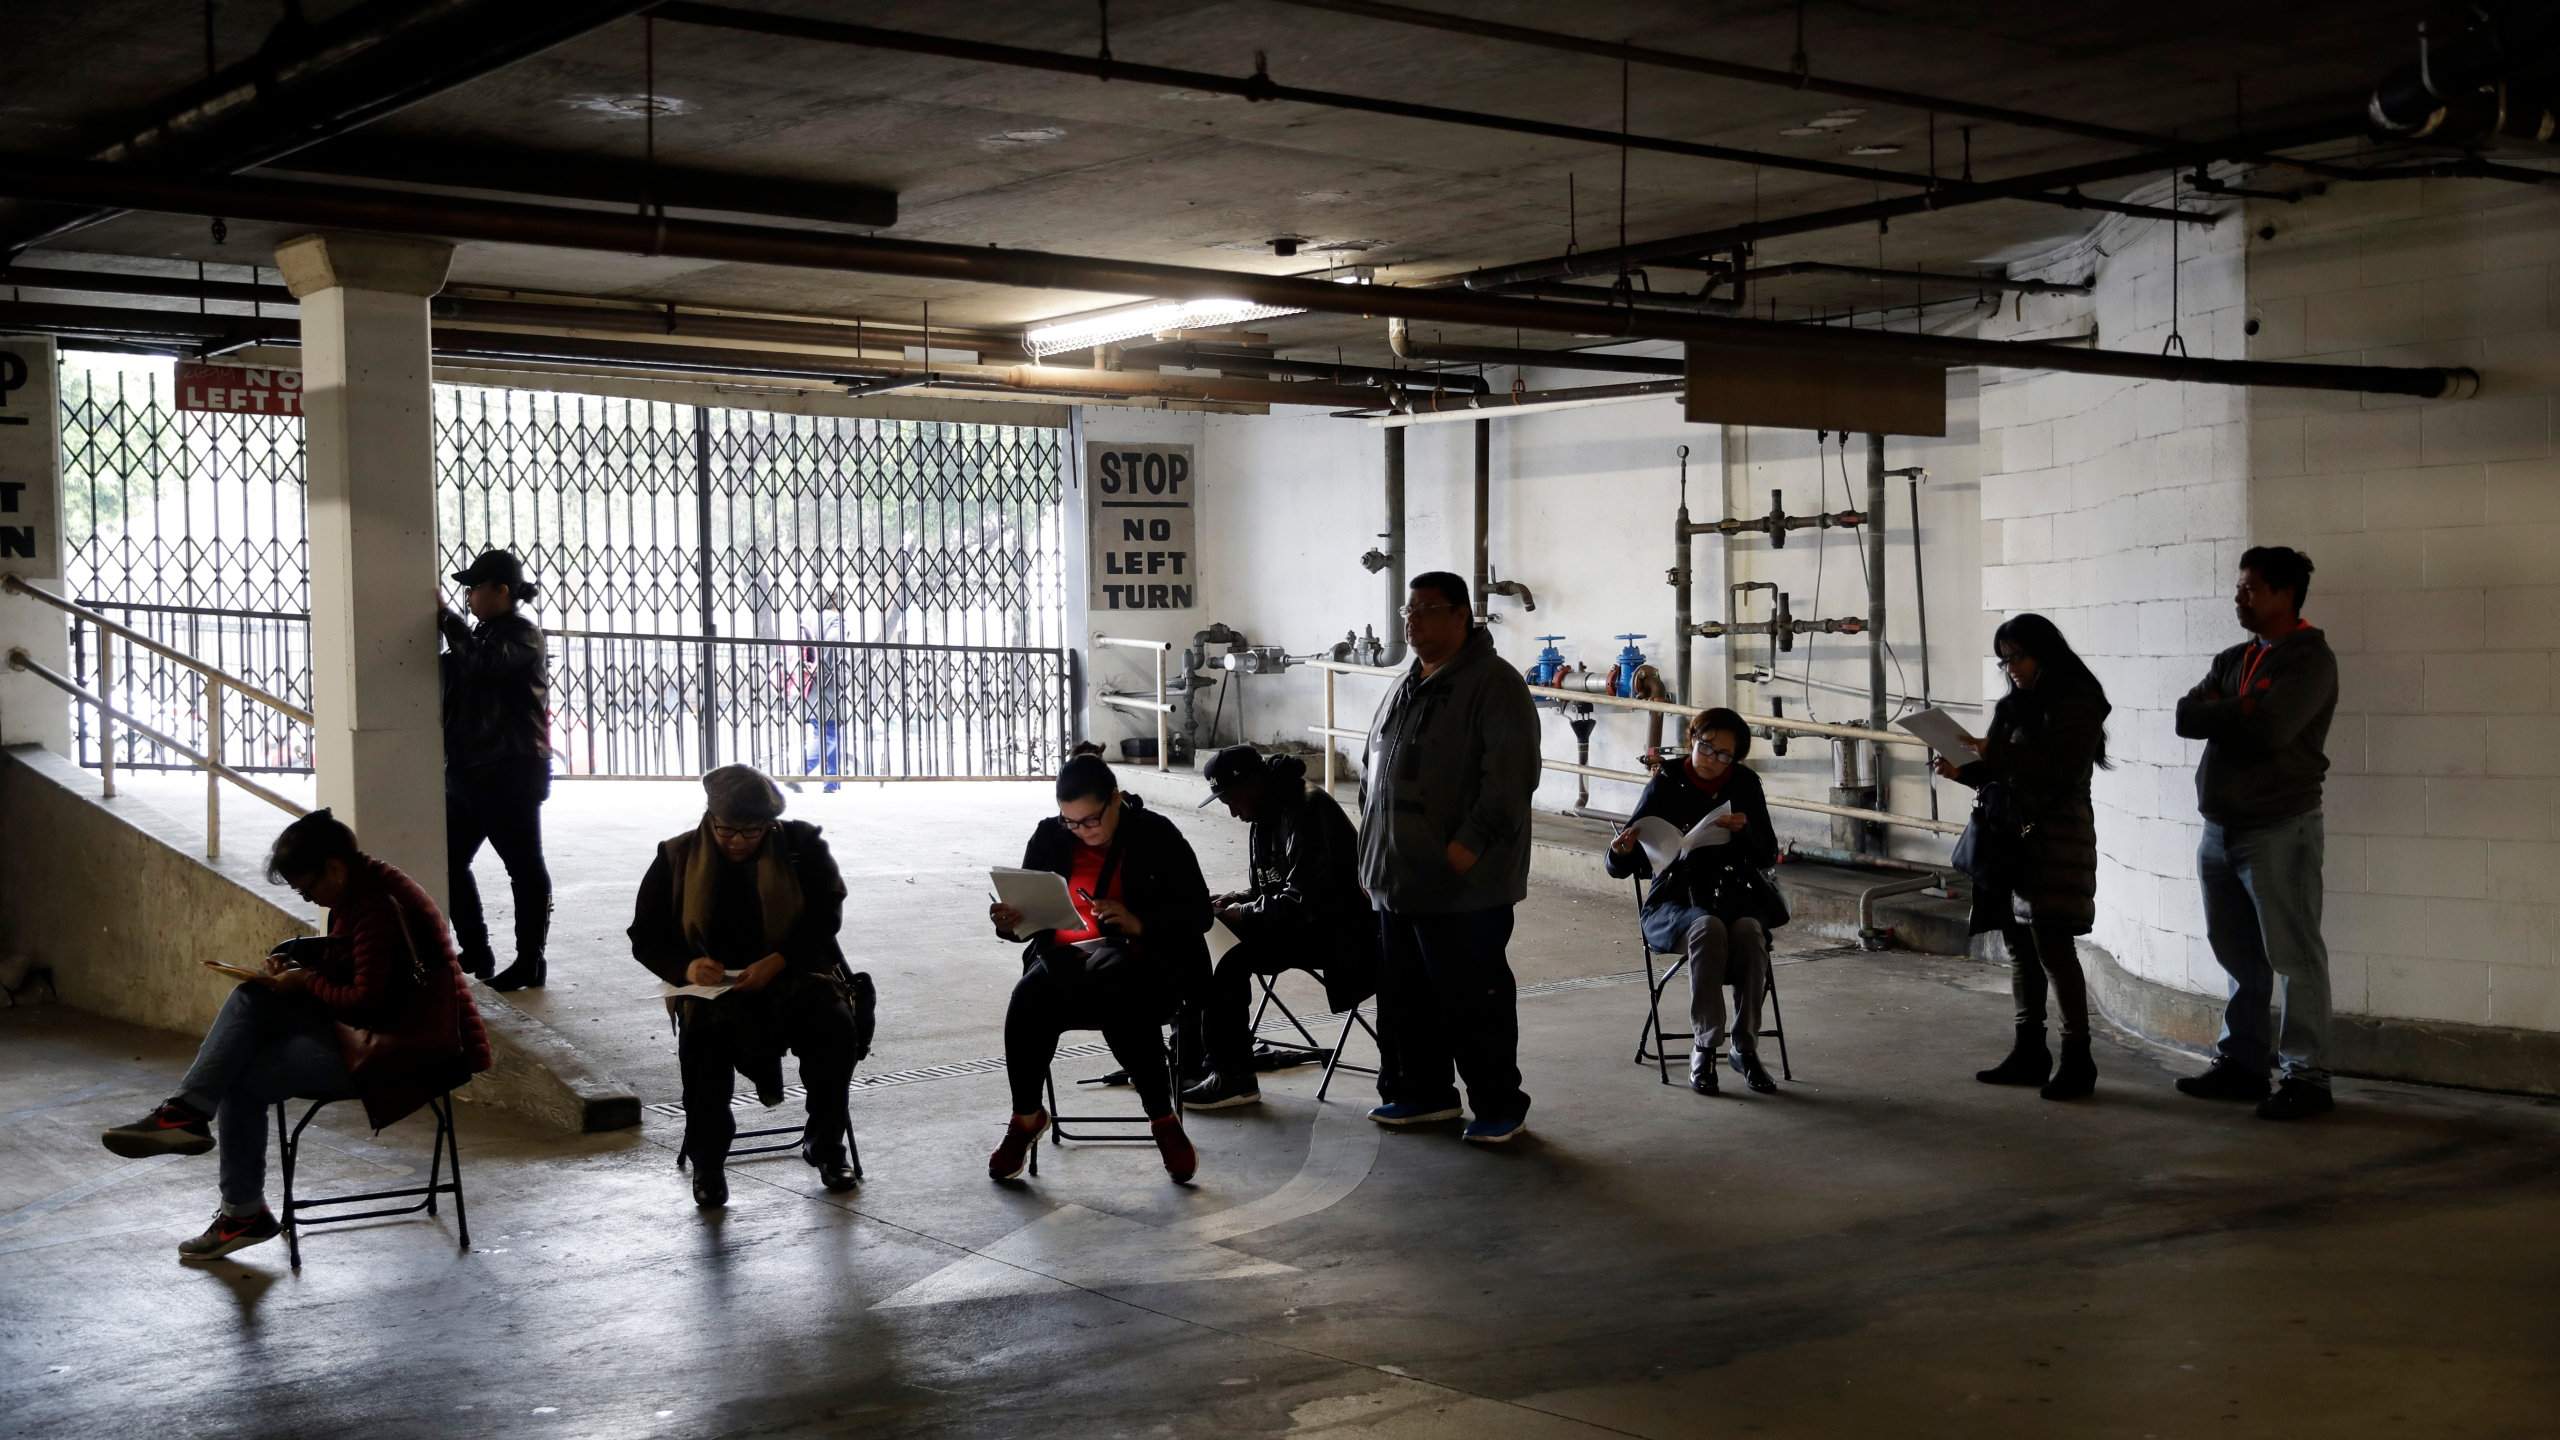 Unionized hospitality workers wait in line in a basement garage to apply for unemployment benefits at the Hospitality Training Academy in Los Angeles on March 13, 2020. (Marcio Jose Sanchez / Associated Press)